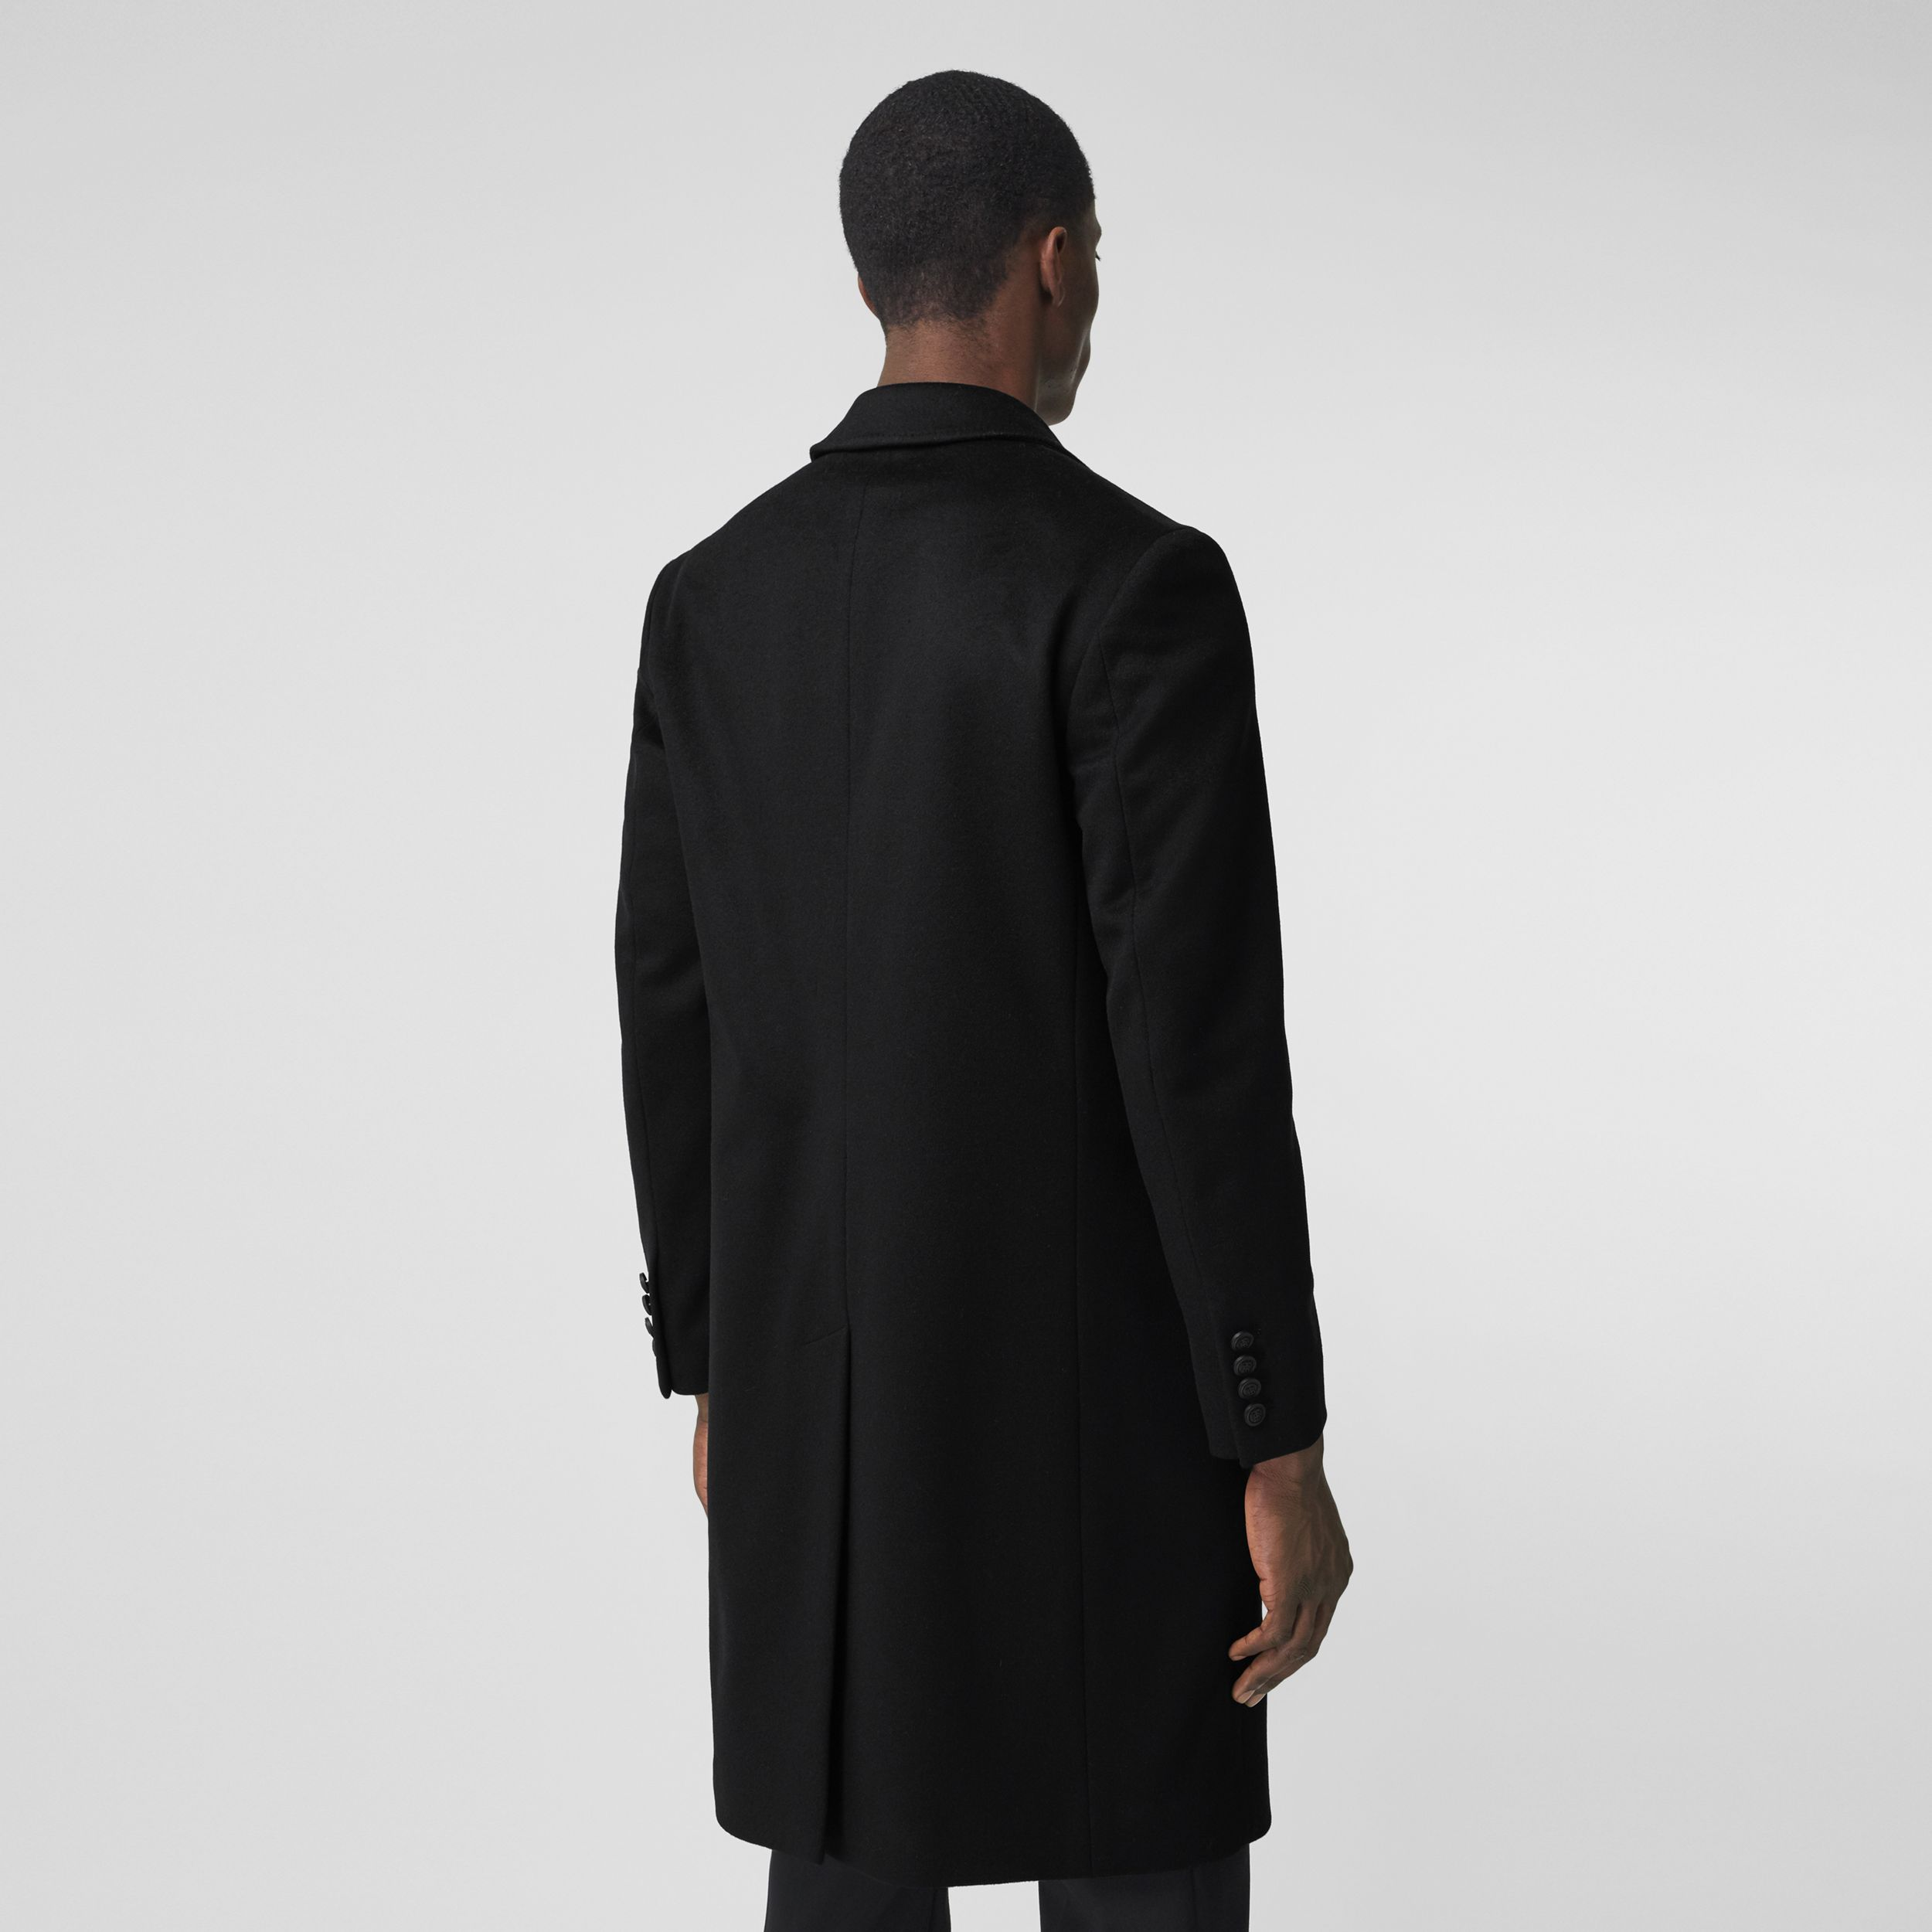 Button Detail Wool Cashmere Tailored Coat in Black - Men | Burberry Canada - 3